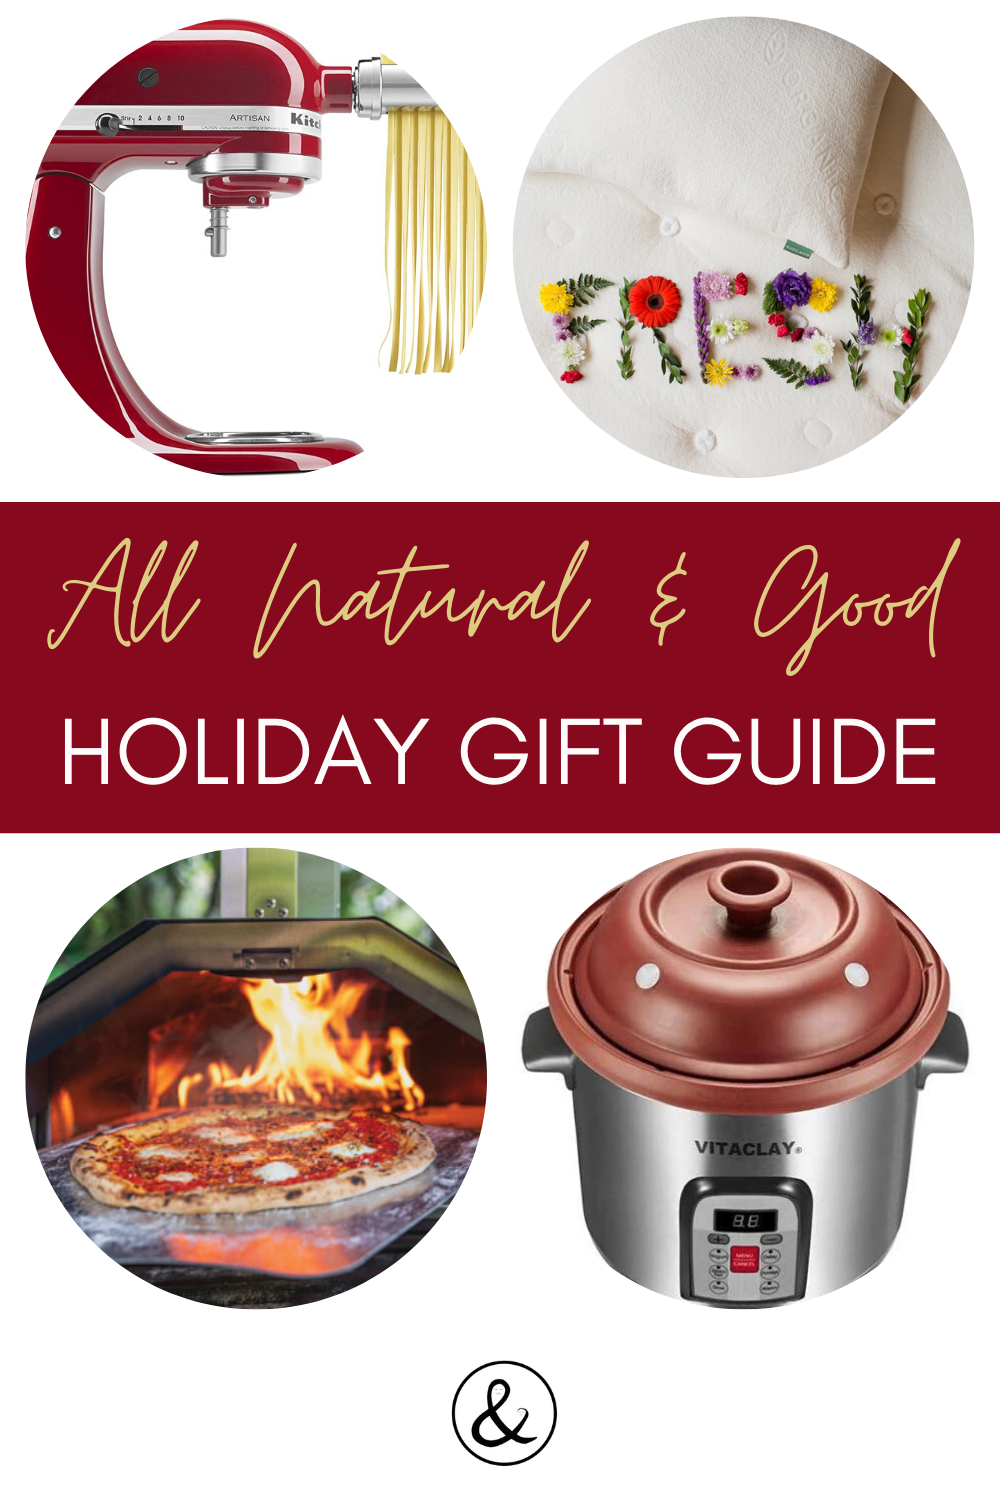 All Natural & Good Holiday Gift Guide